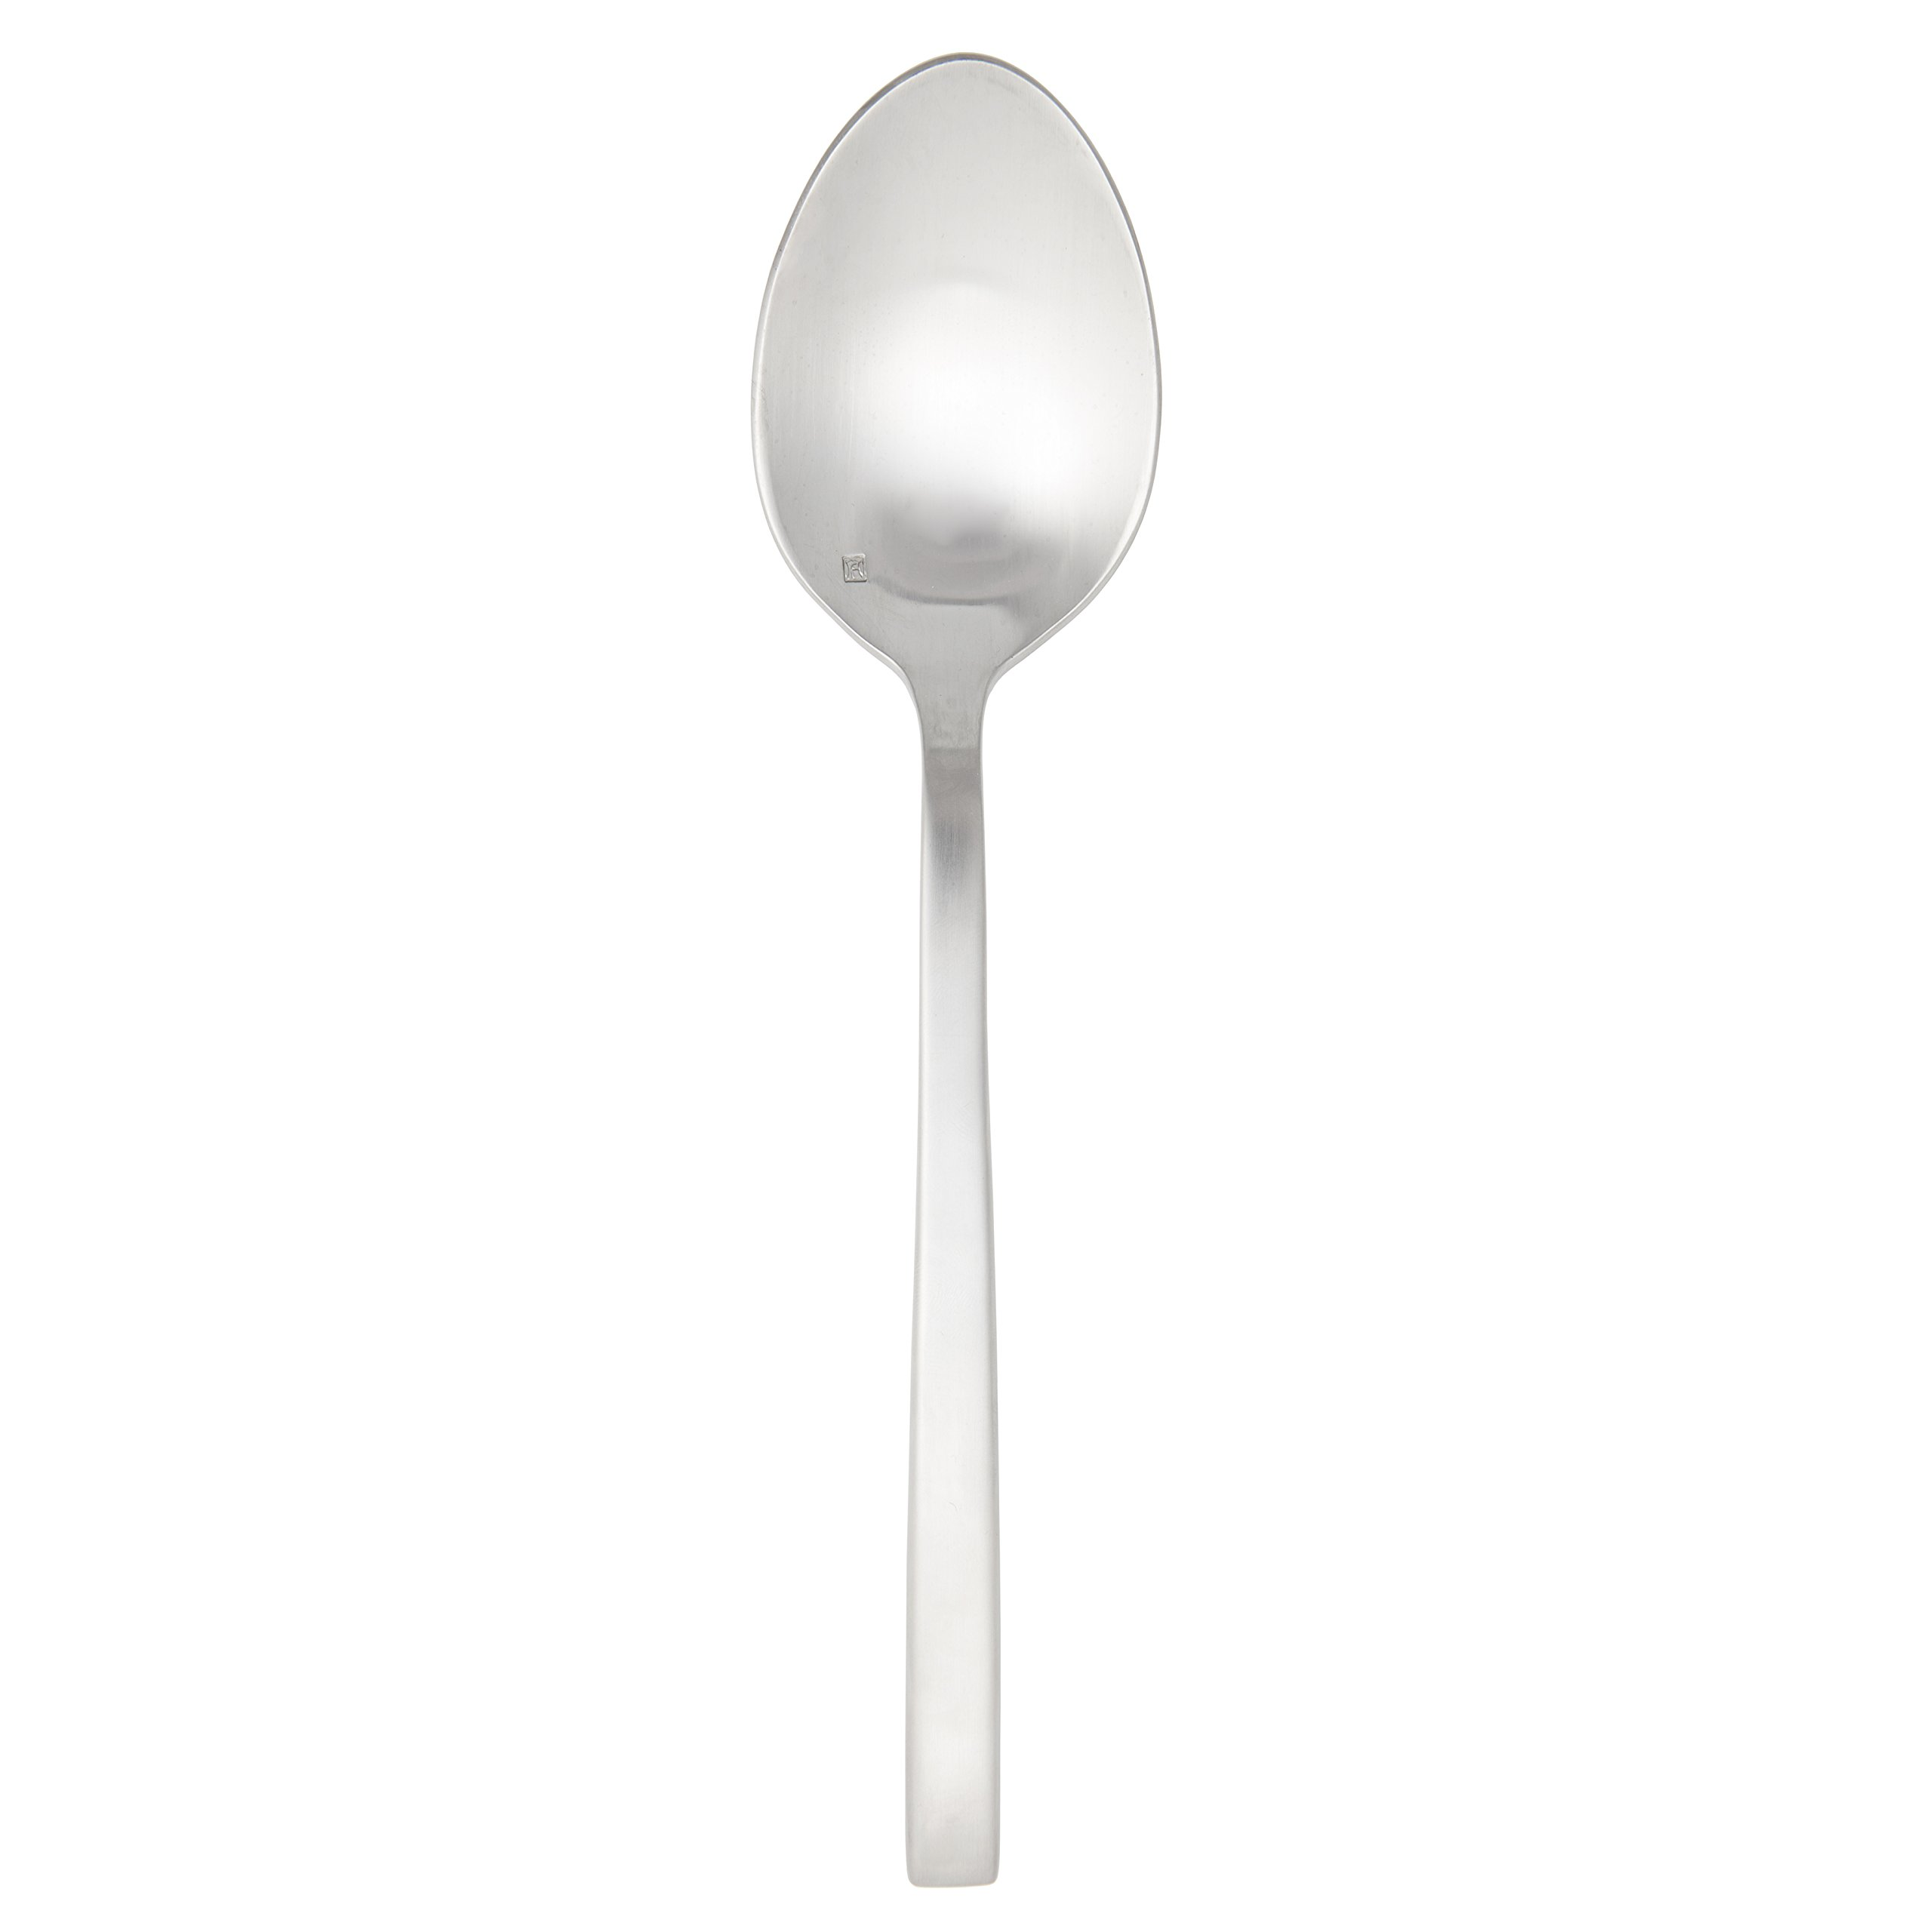 Fortessa Arezzo 18/10 Stainless Steel Flatware, Serving Spoon, 9.3'', Brushed Stainless Steel